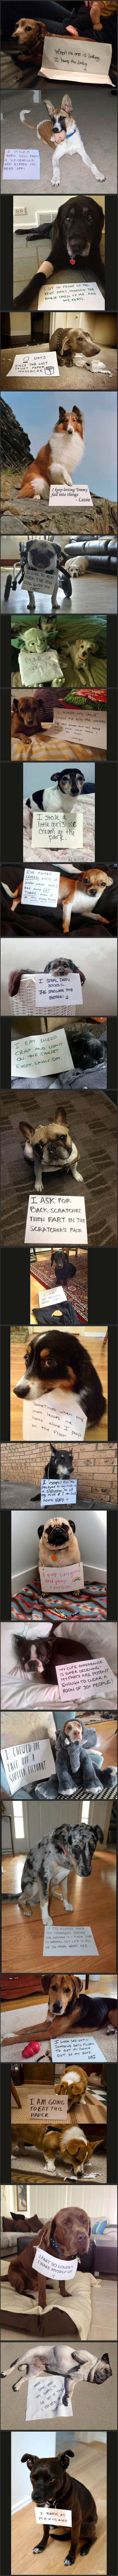 Dog Shaming Montage. I love the elephant one!